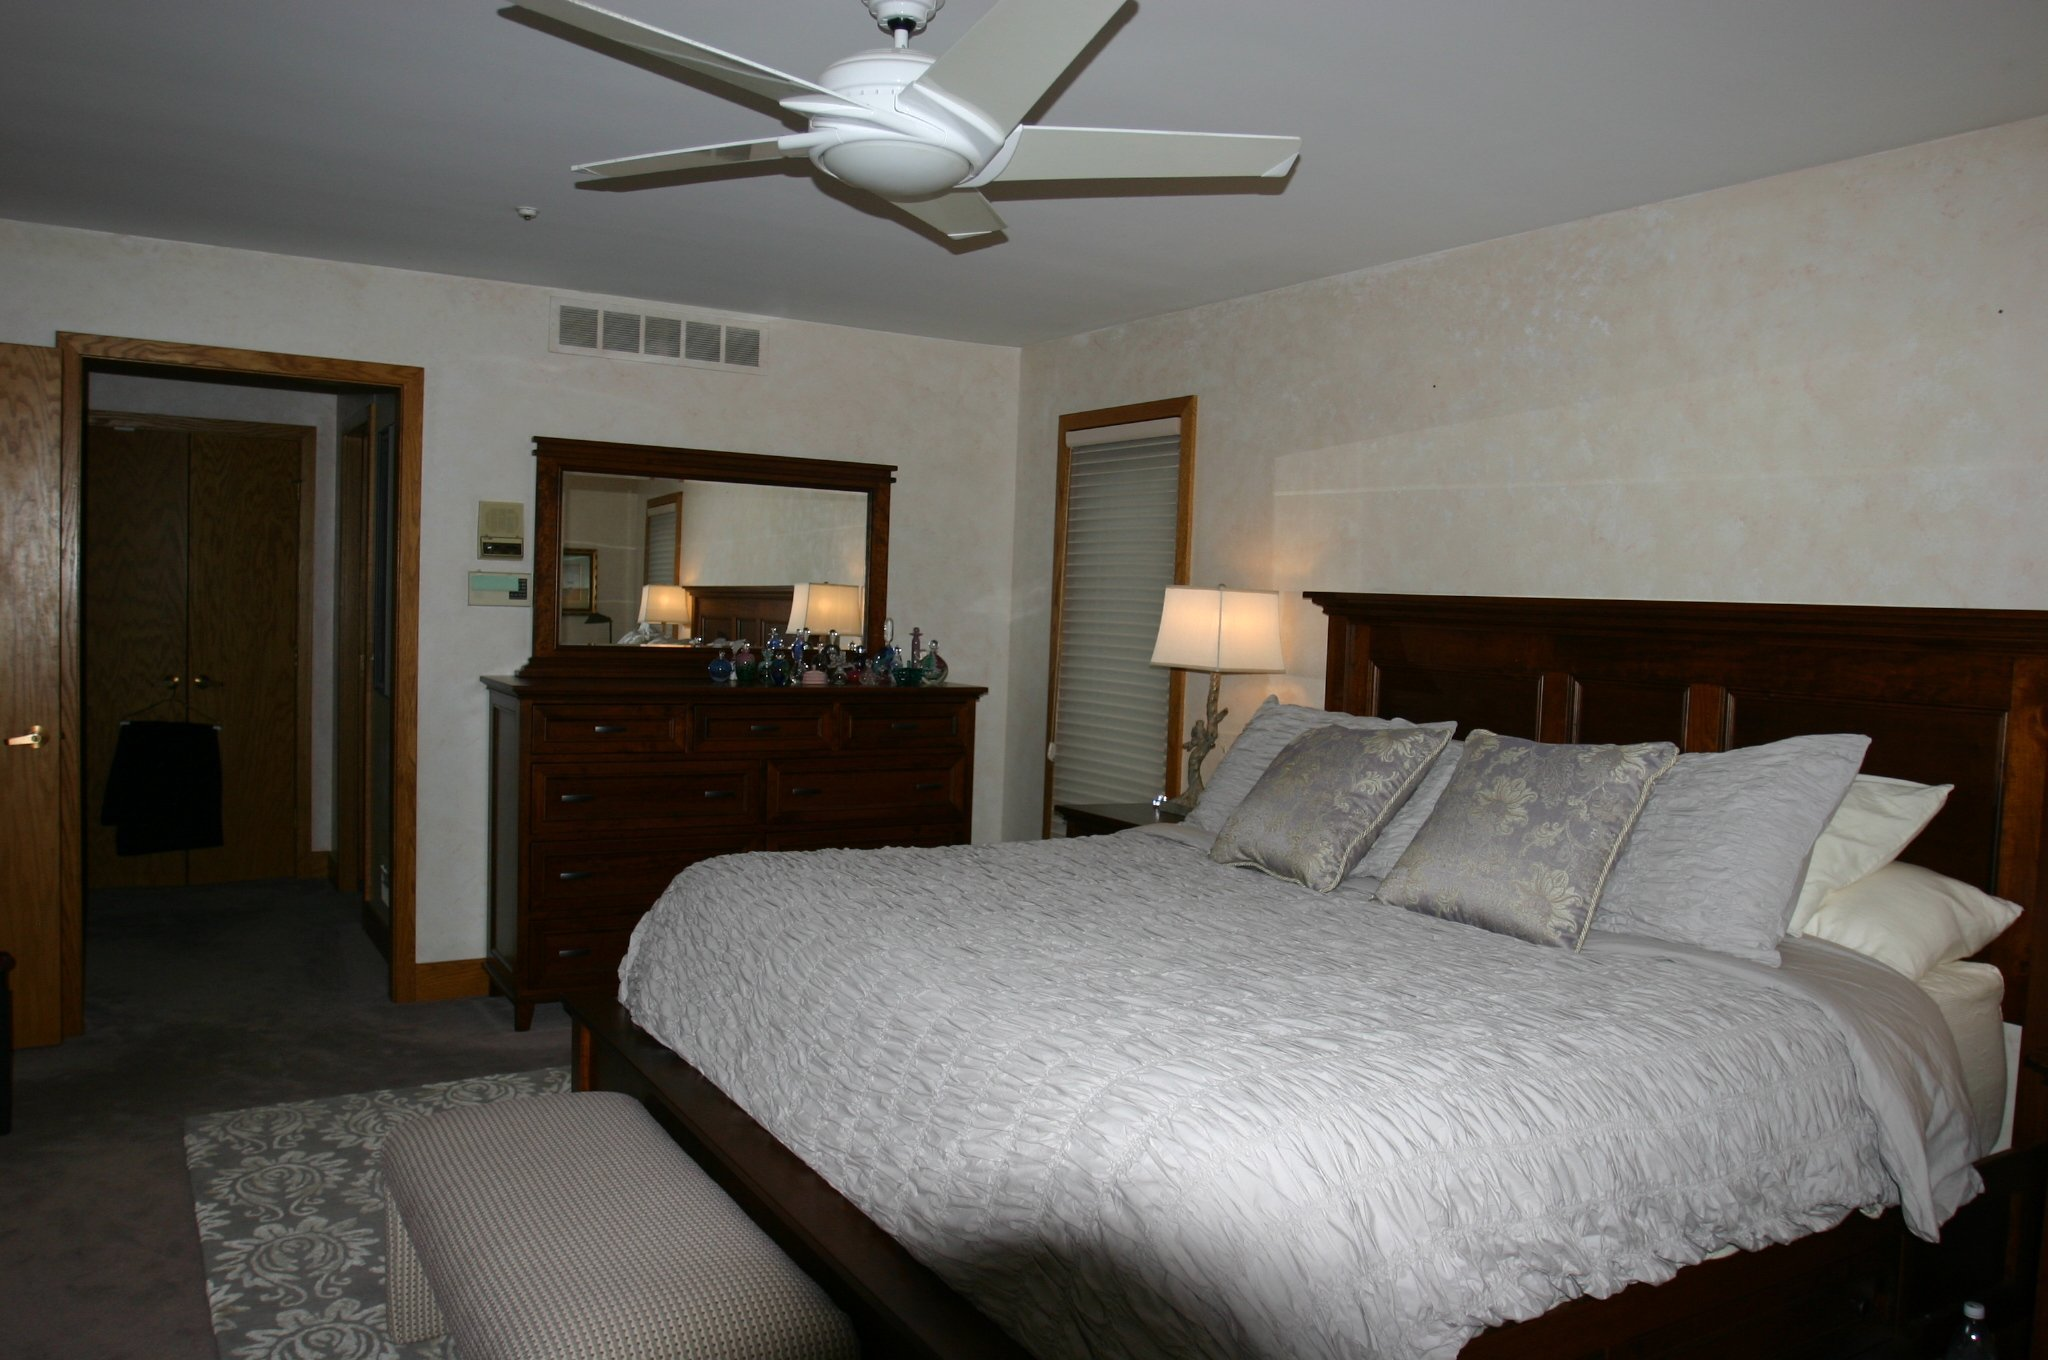 Best Custom Designed Quality Furniture Rochester Ny Jack Greco With Pictures